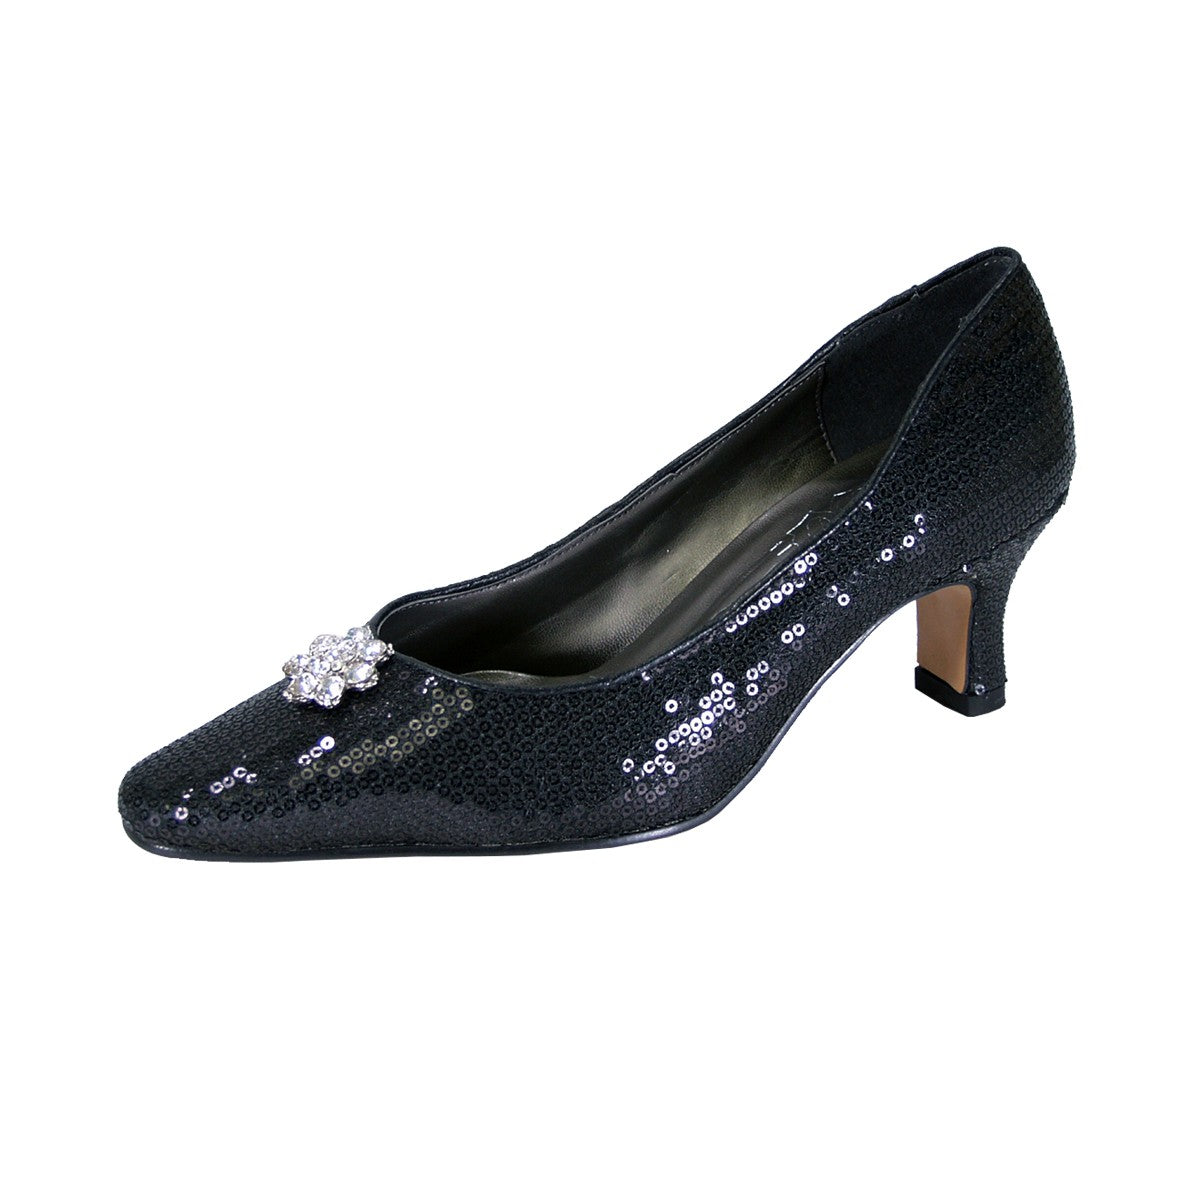 Women Church Shoes DP726 Black - Church Suits For Less